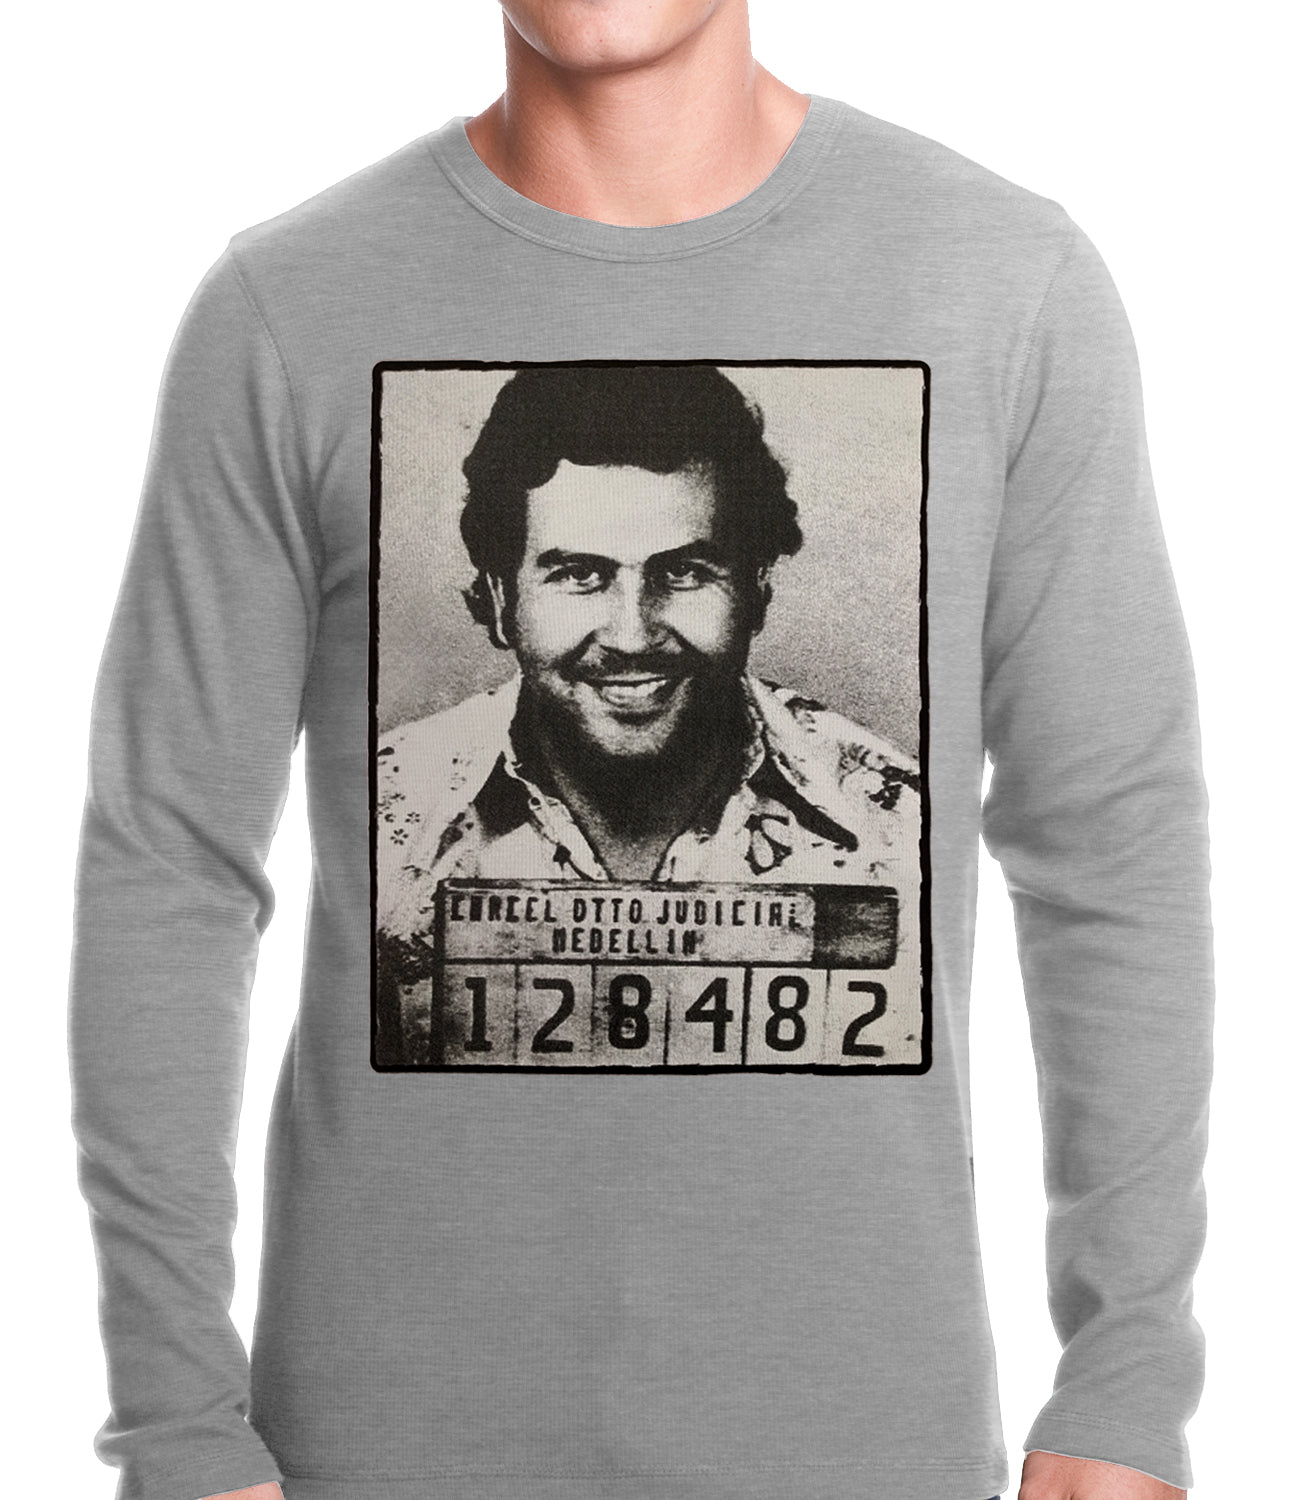 Pablo Escobar Smiling Mug Shot Thermal Shirt